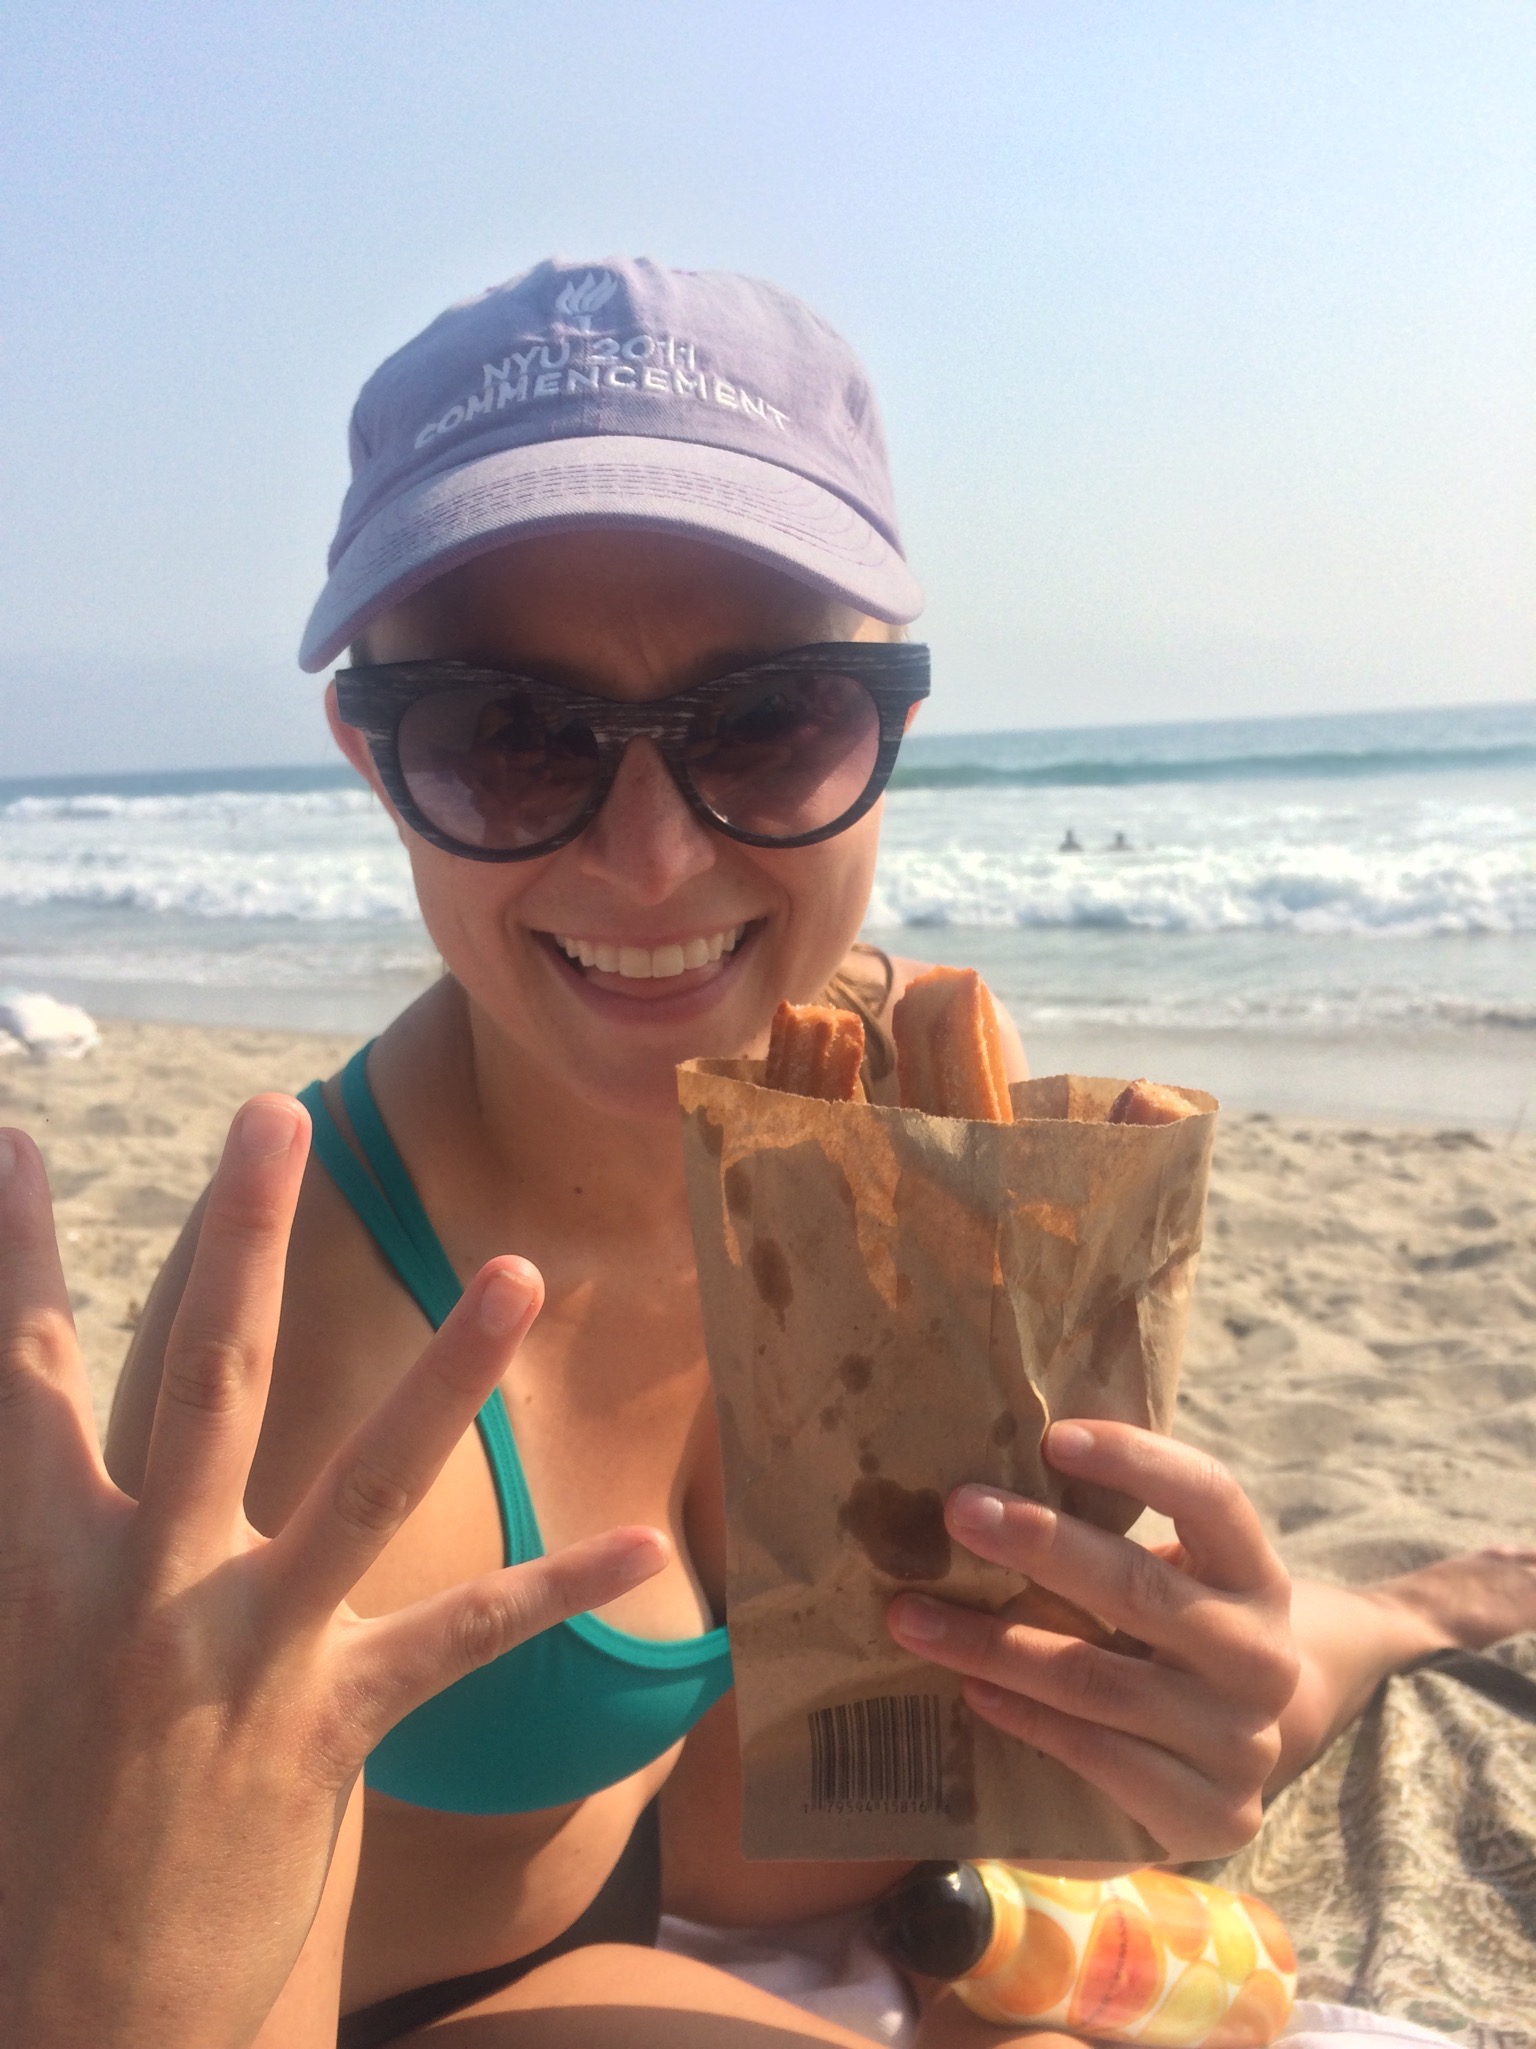 This is me eating churros in a bikini. And I don't give a FUCK.